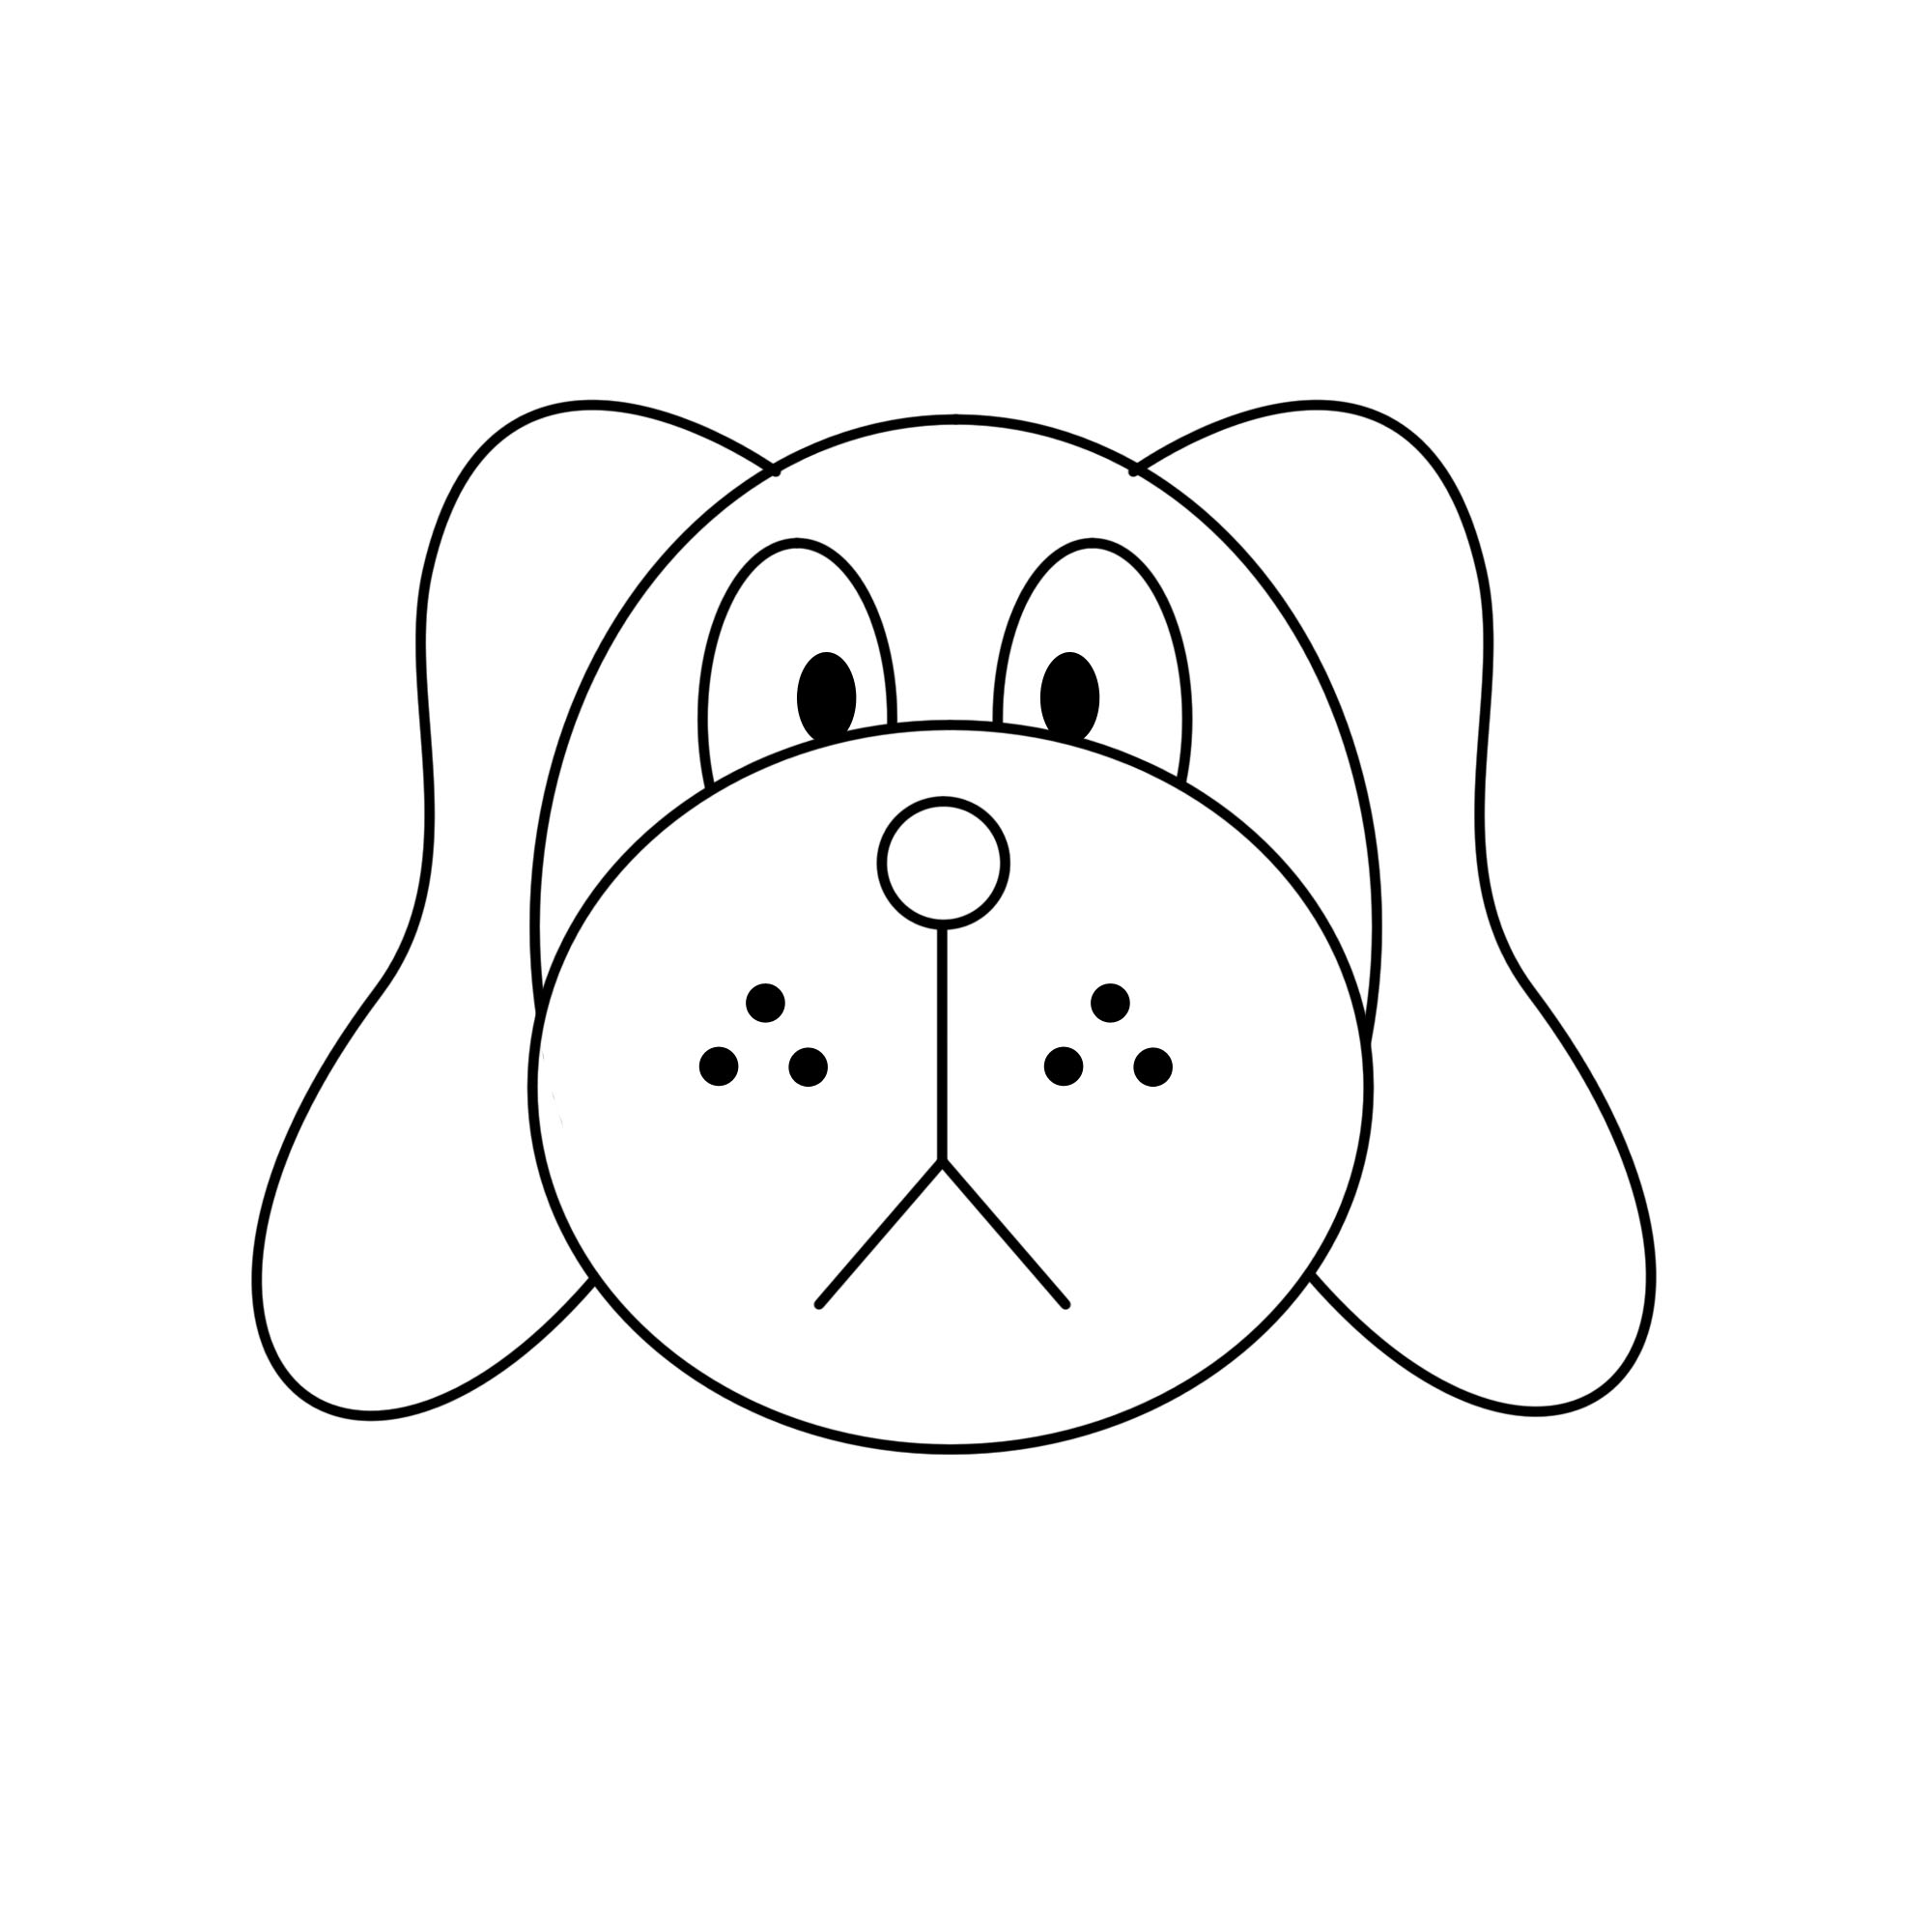 How to draw a dog face easy clipart best for Best drawings to draw